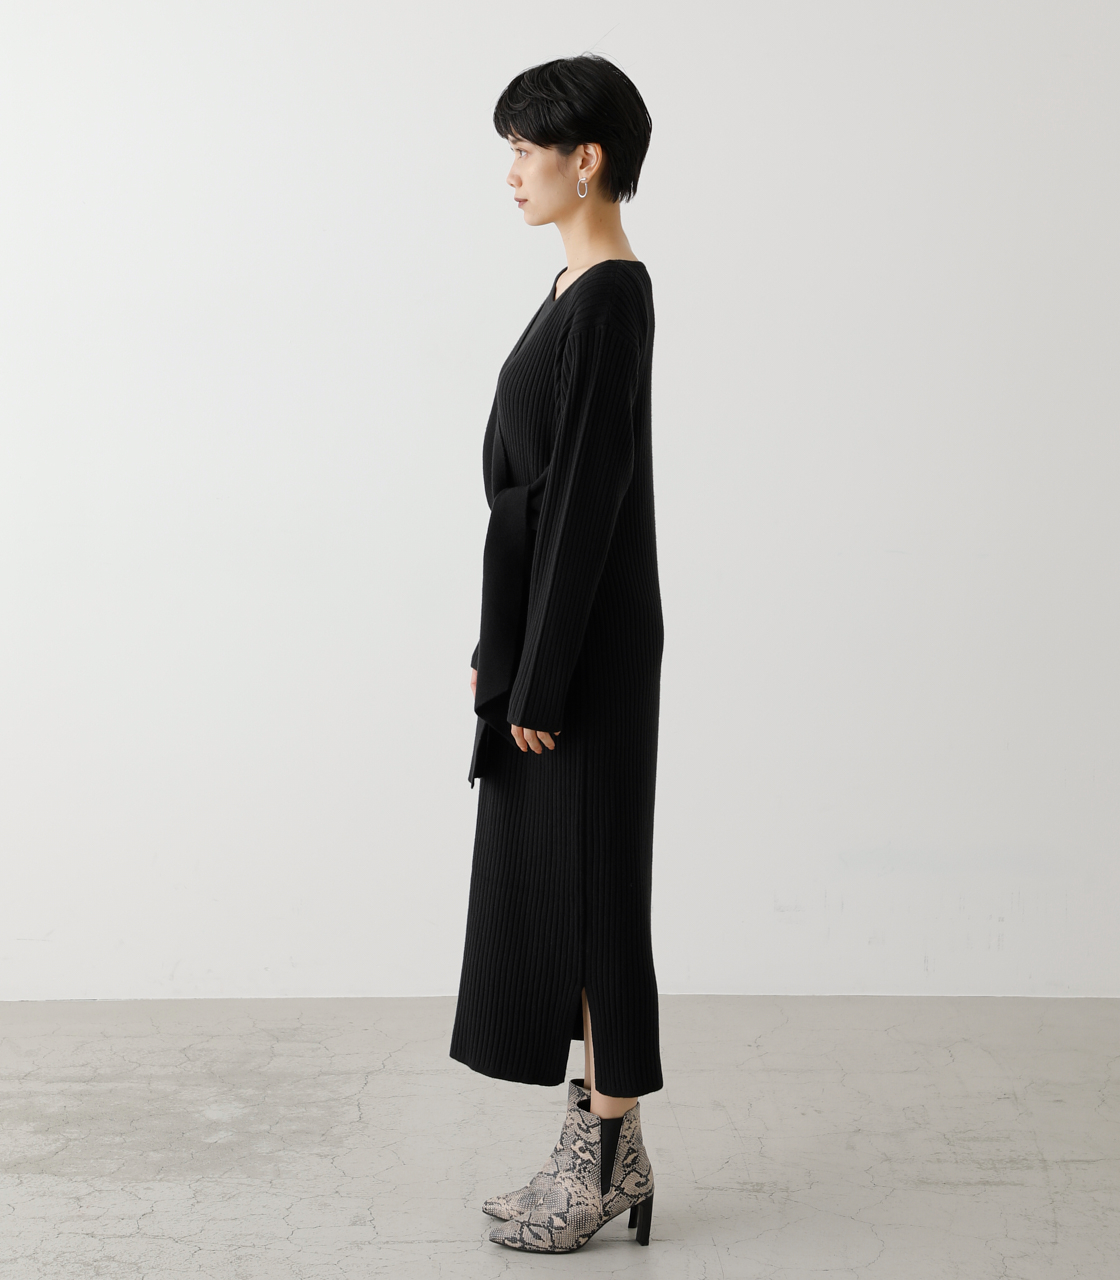 FRONT LINK ASYMMETRY KNIT OP/フロントリンクアシンメトリーニットワンピース【MOOK53掲載 90004】 詳細画像 BLK 6